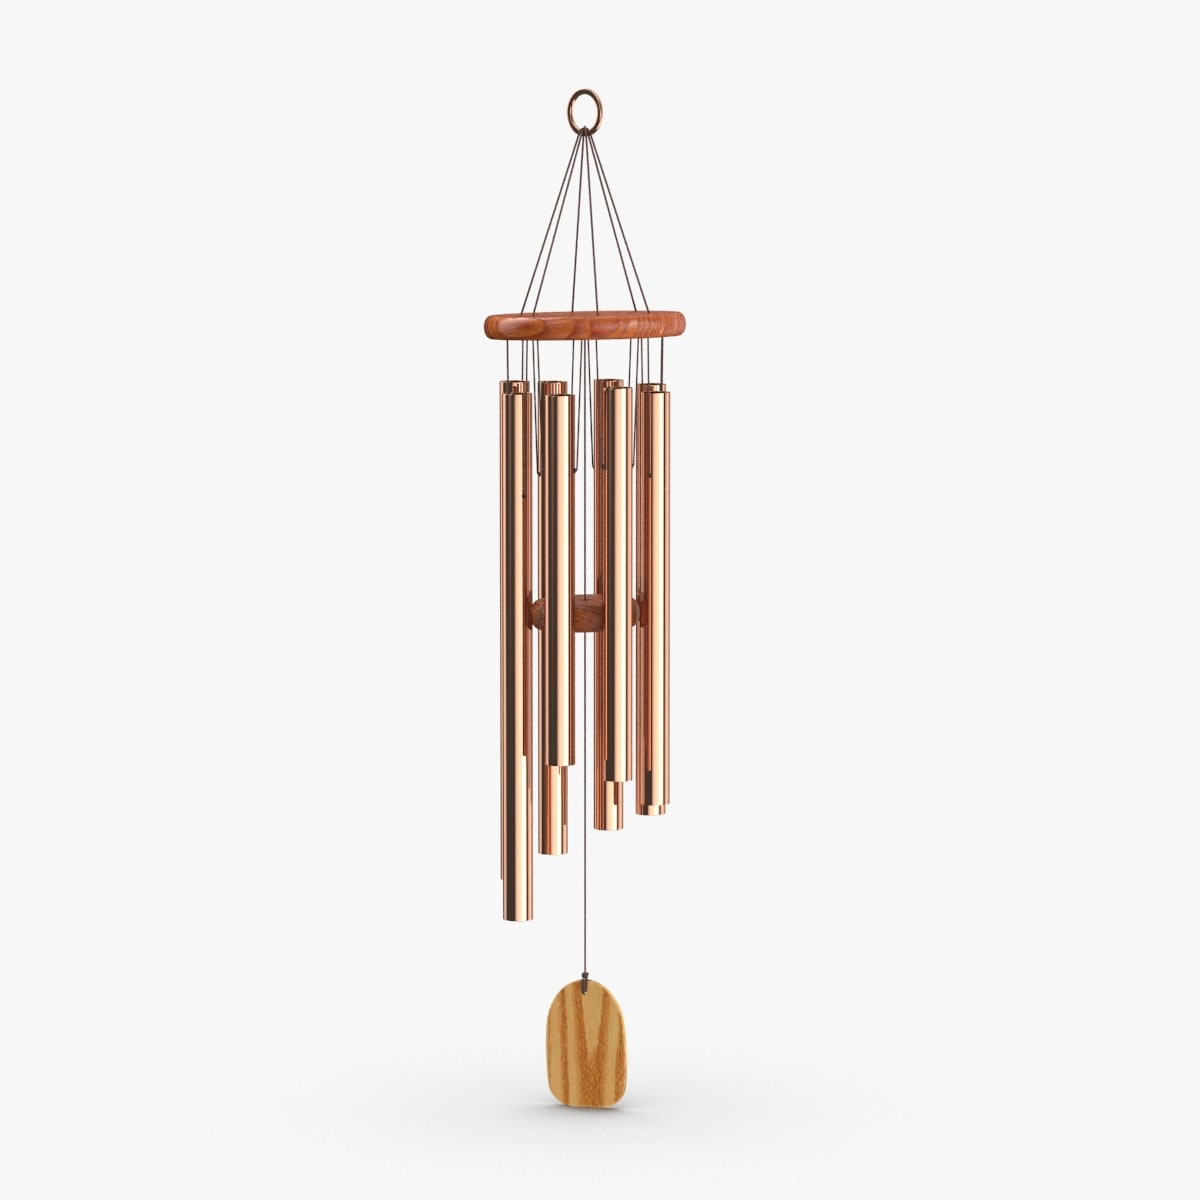 Wind Chime 3D Models for Download | TurboSquid